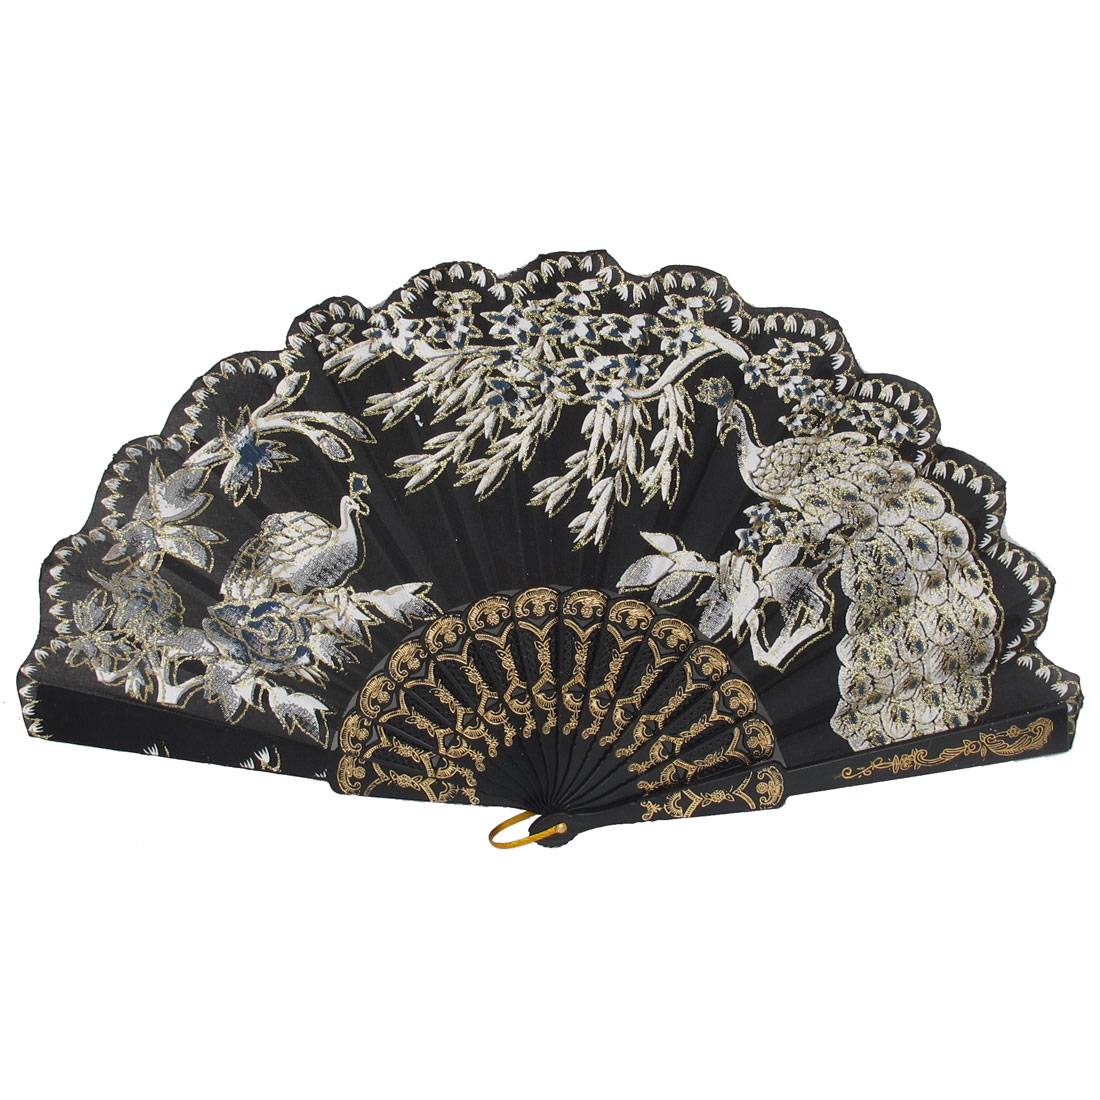 Women Party Gift Carved Ribs Floral Peacock Pattern Folding Hand Fan Black